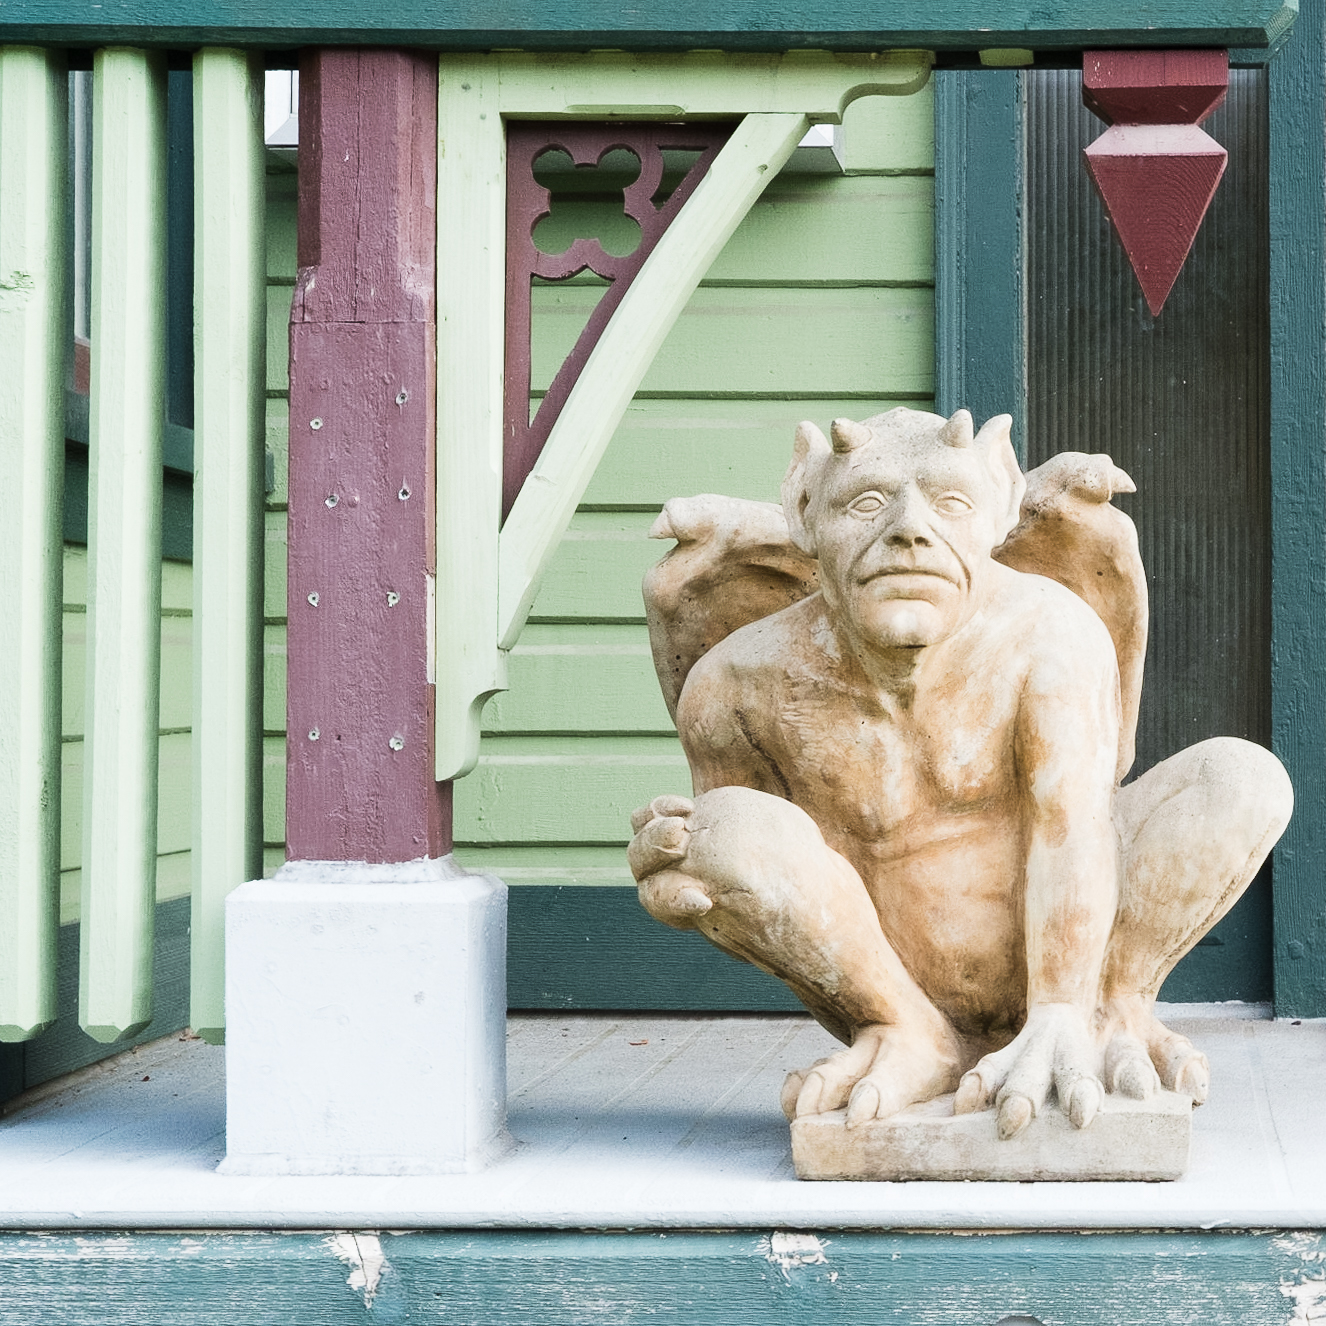 gargoyle, New Westminster, BC, Canada, architecture, home